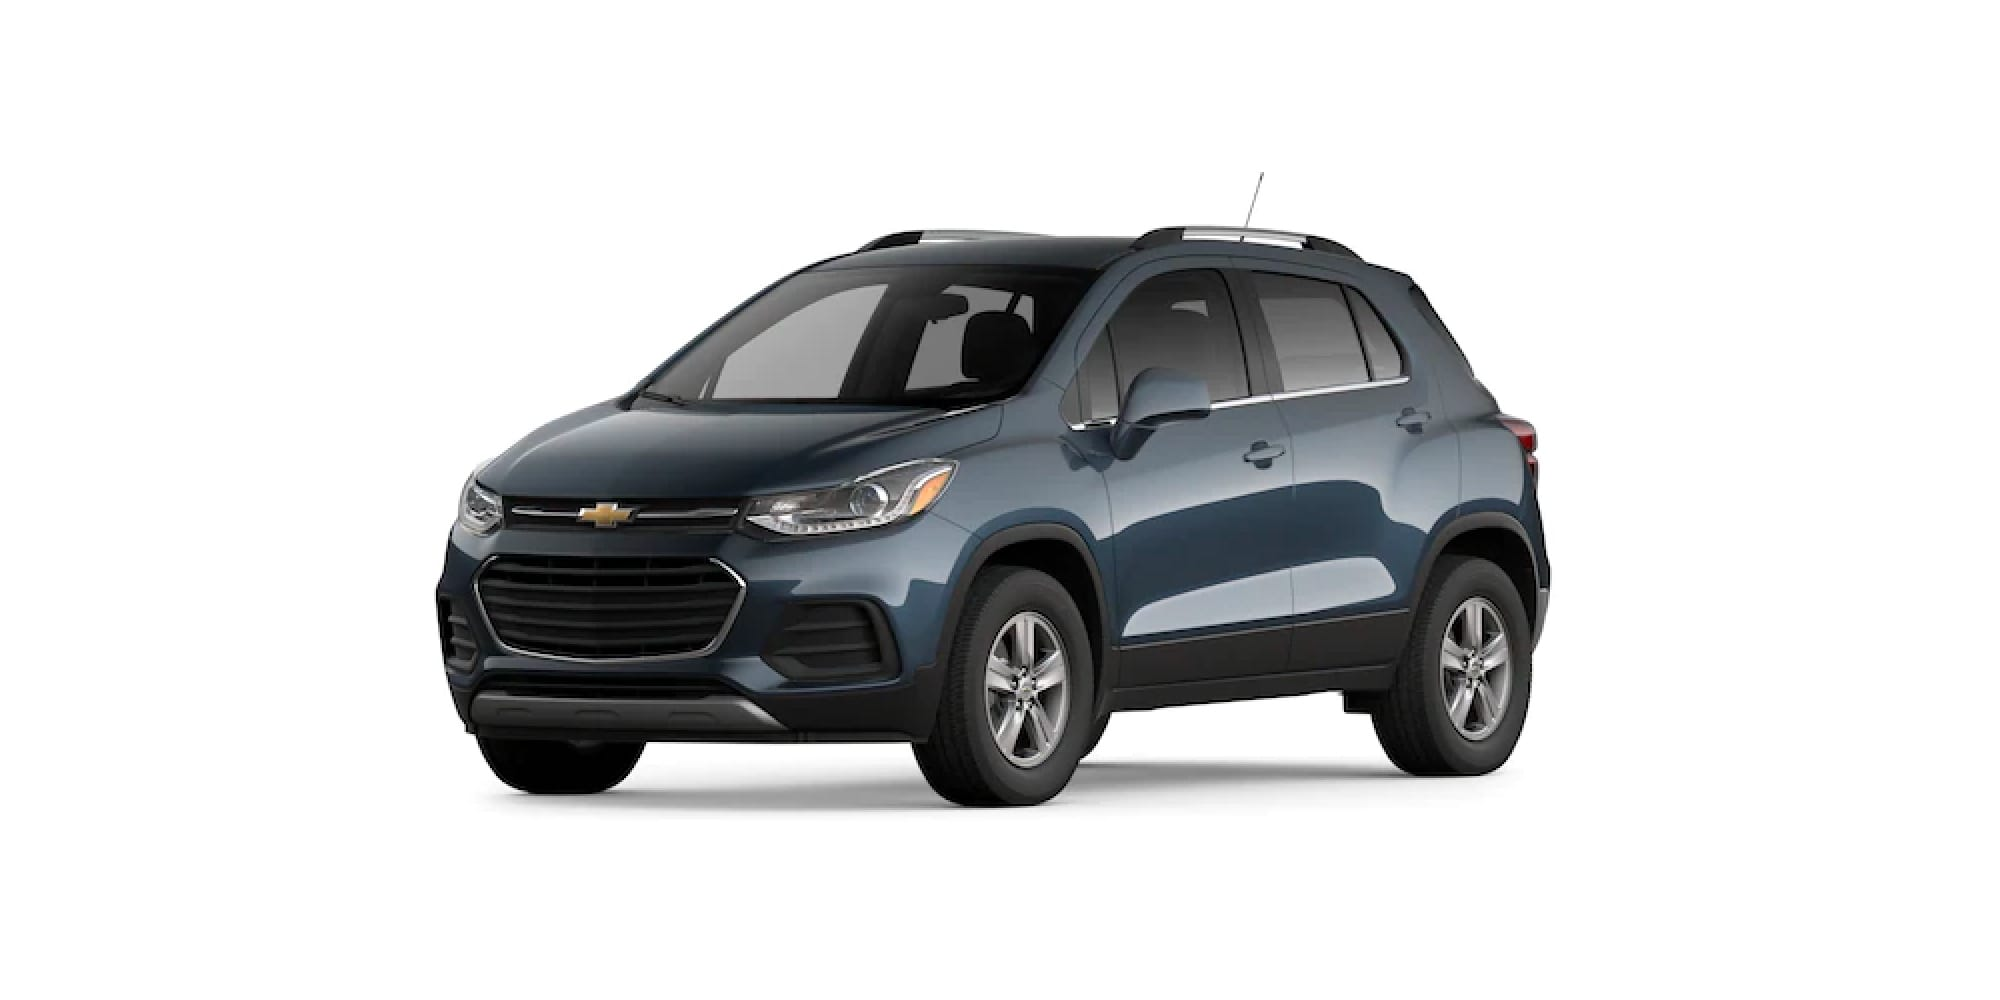 2022 Chevy Trax in SHADOW GRAY METALLIC